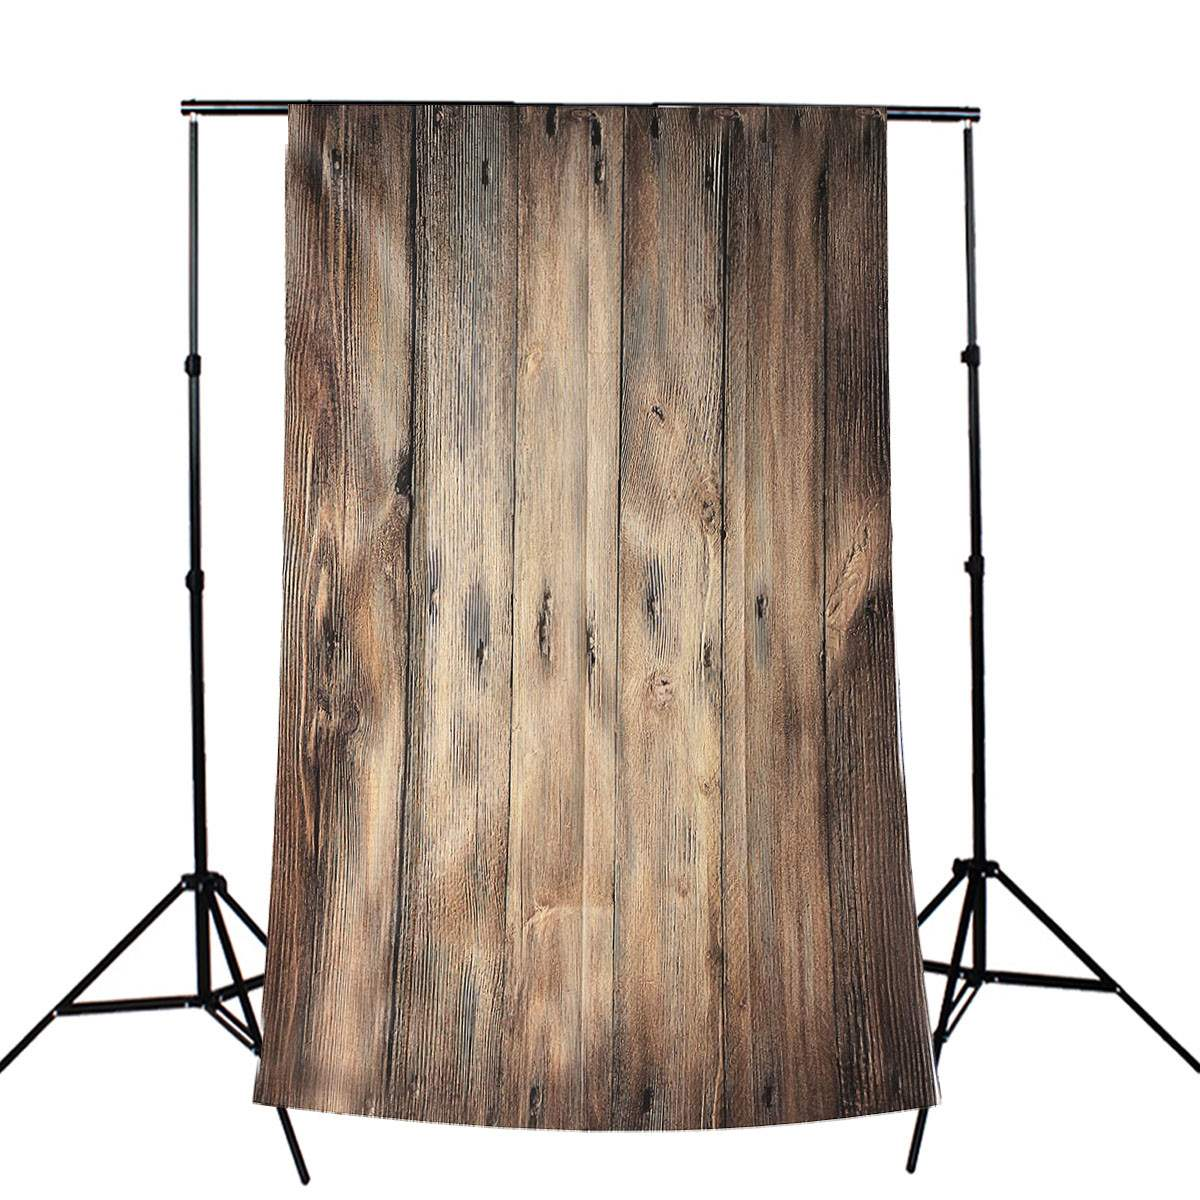 3x5ft flower wood wall vinyl background photography photo studio props - 3x5ft Silk Photography Backdrop Silk Photo Wood Wall Floor Studio Prop Background Realistic Lasting Wear 90x150cm